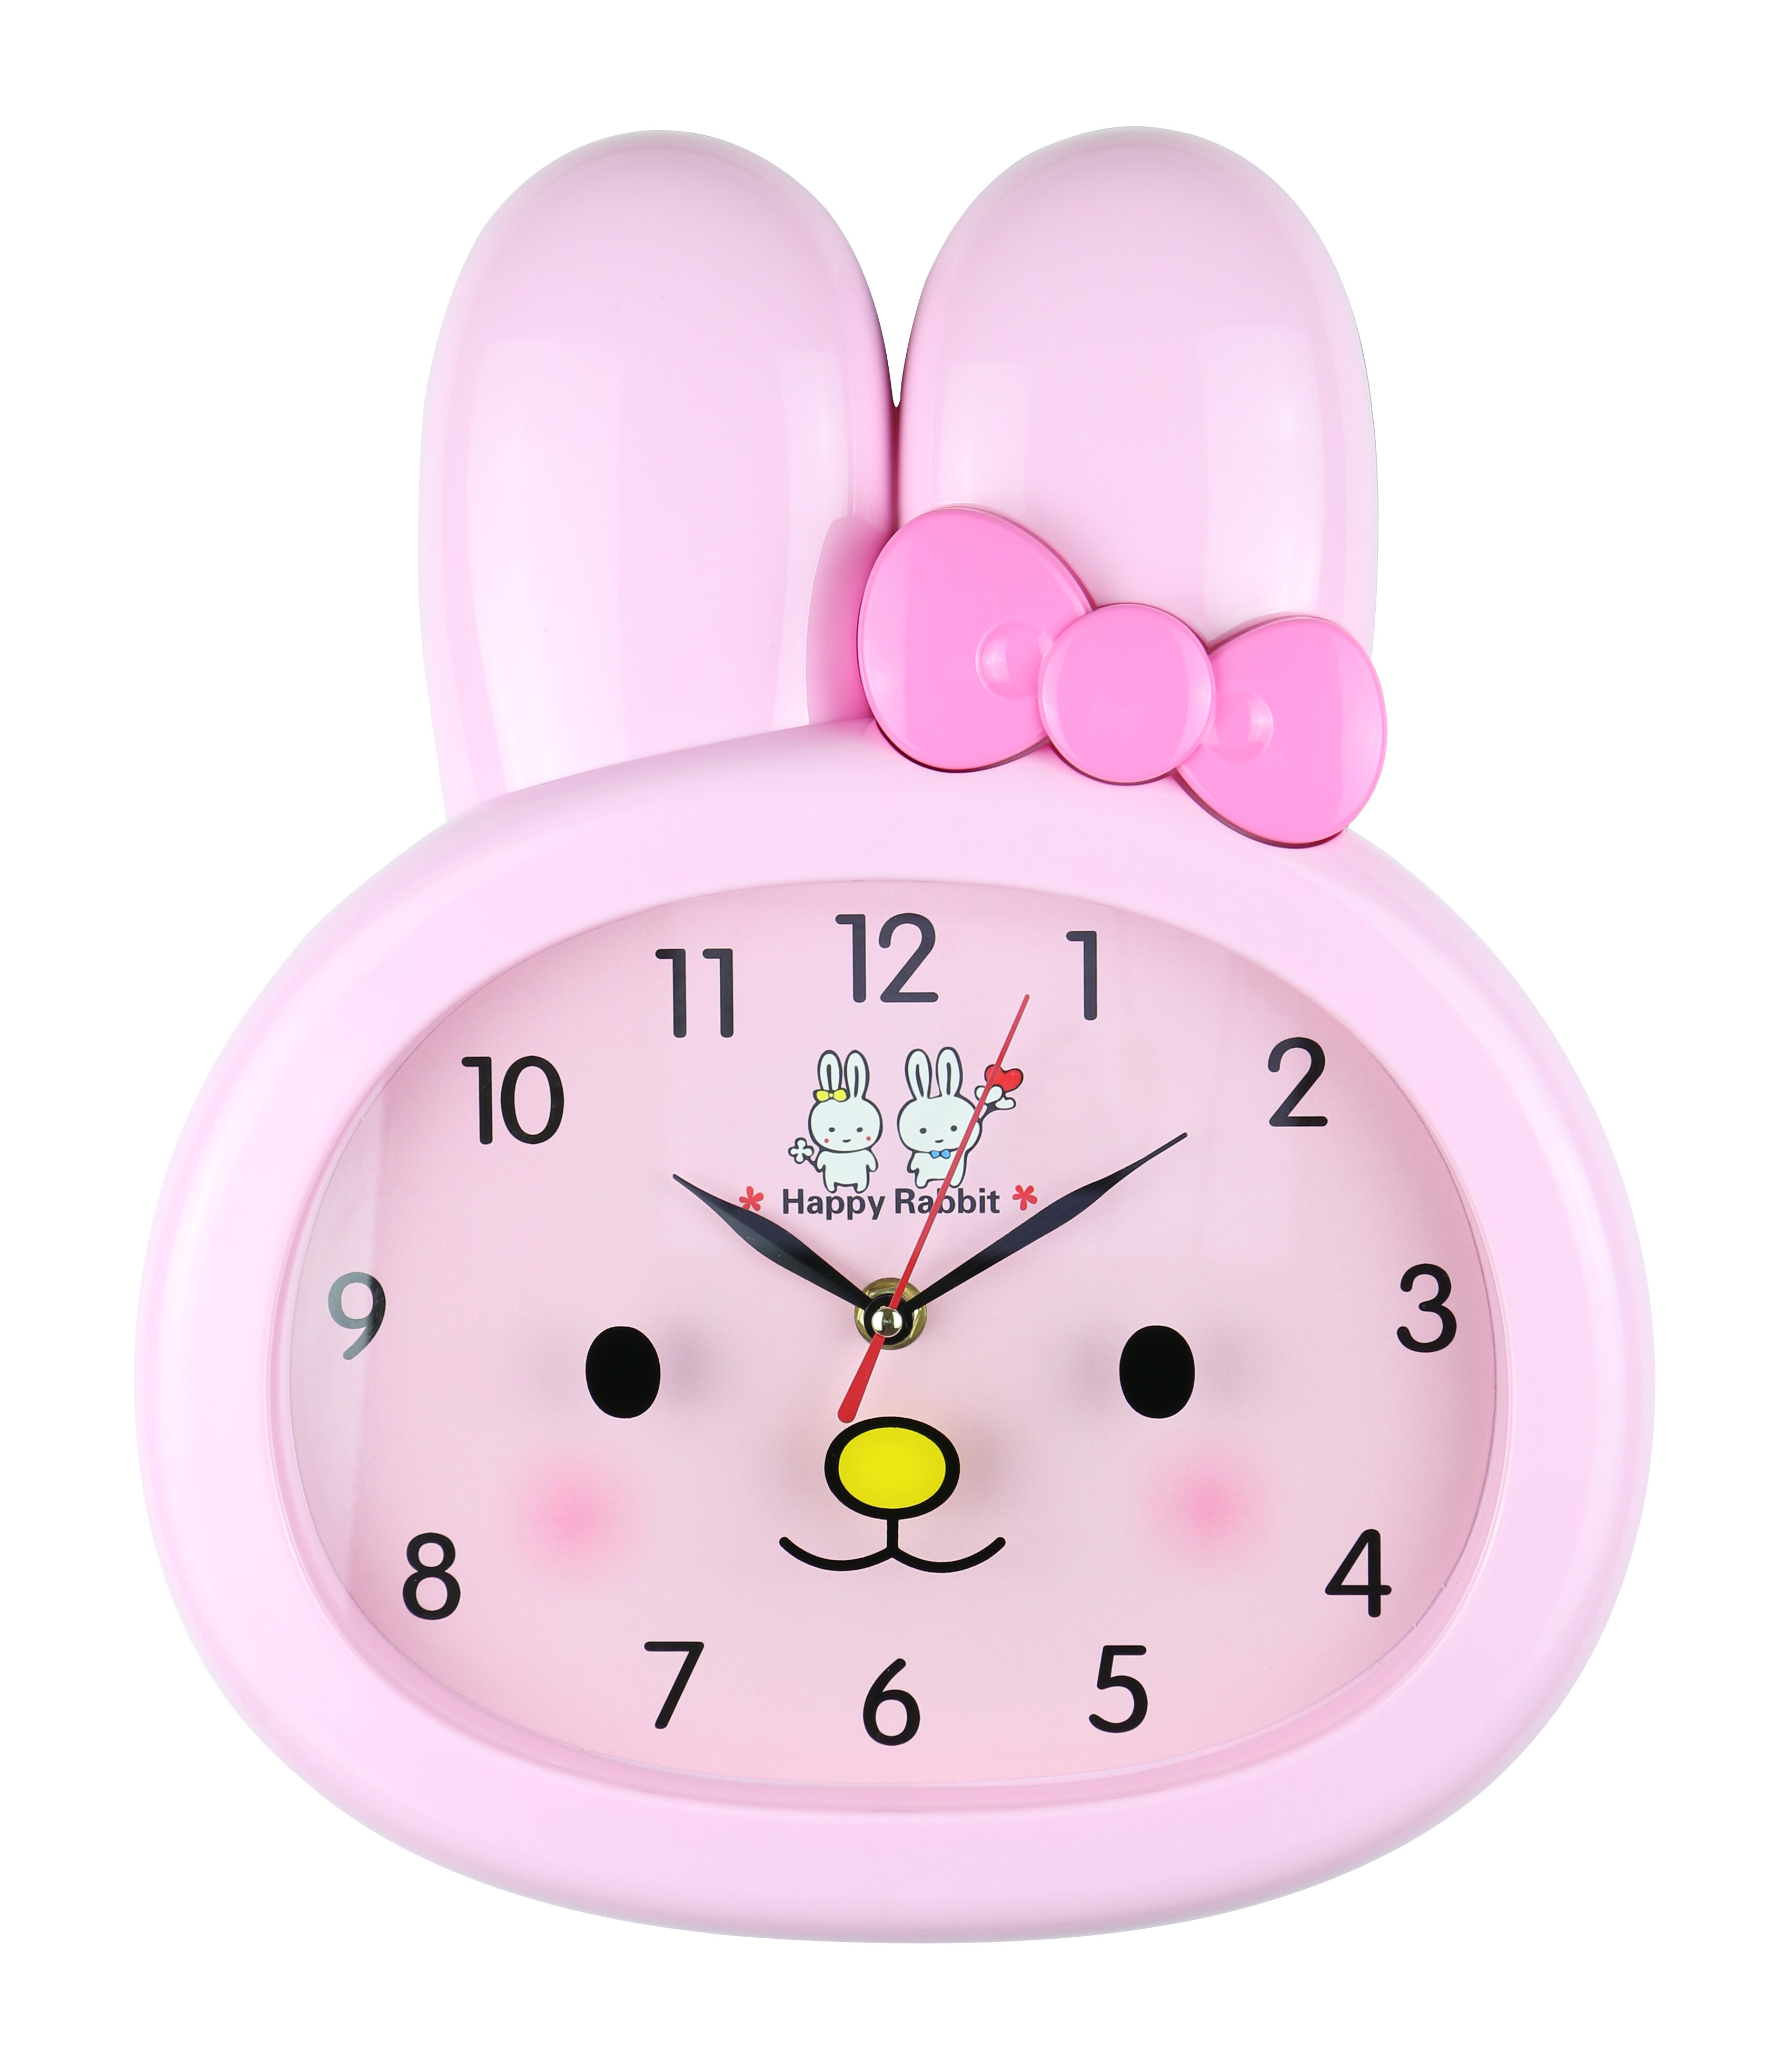 WOODEN MINNIE MOUSE SHAPED KIDS HOME BATTERY OPERATED CLOCK PINK